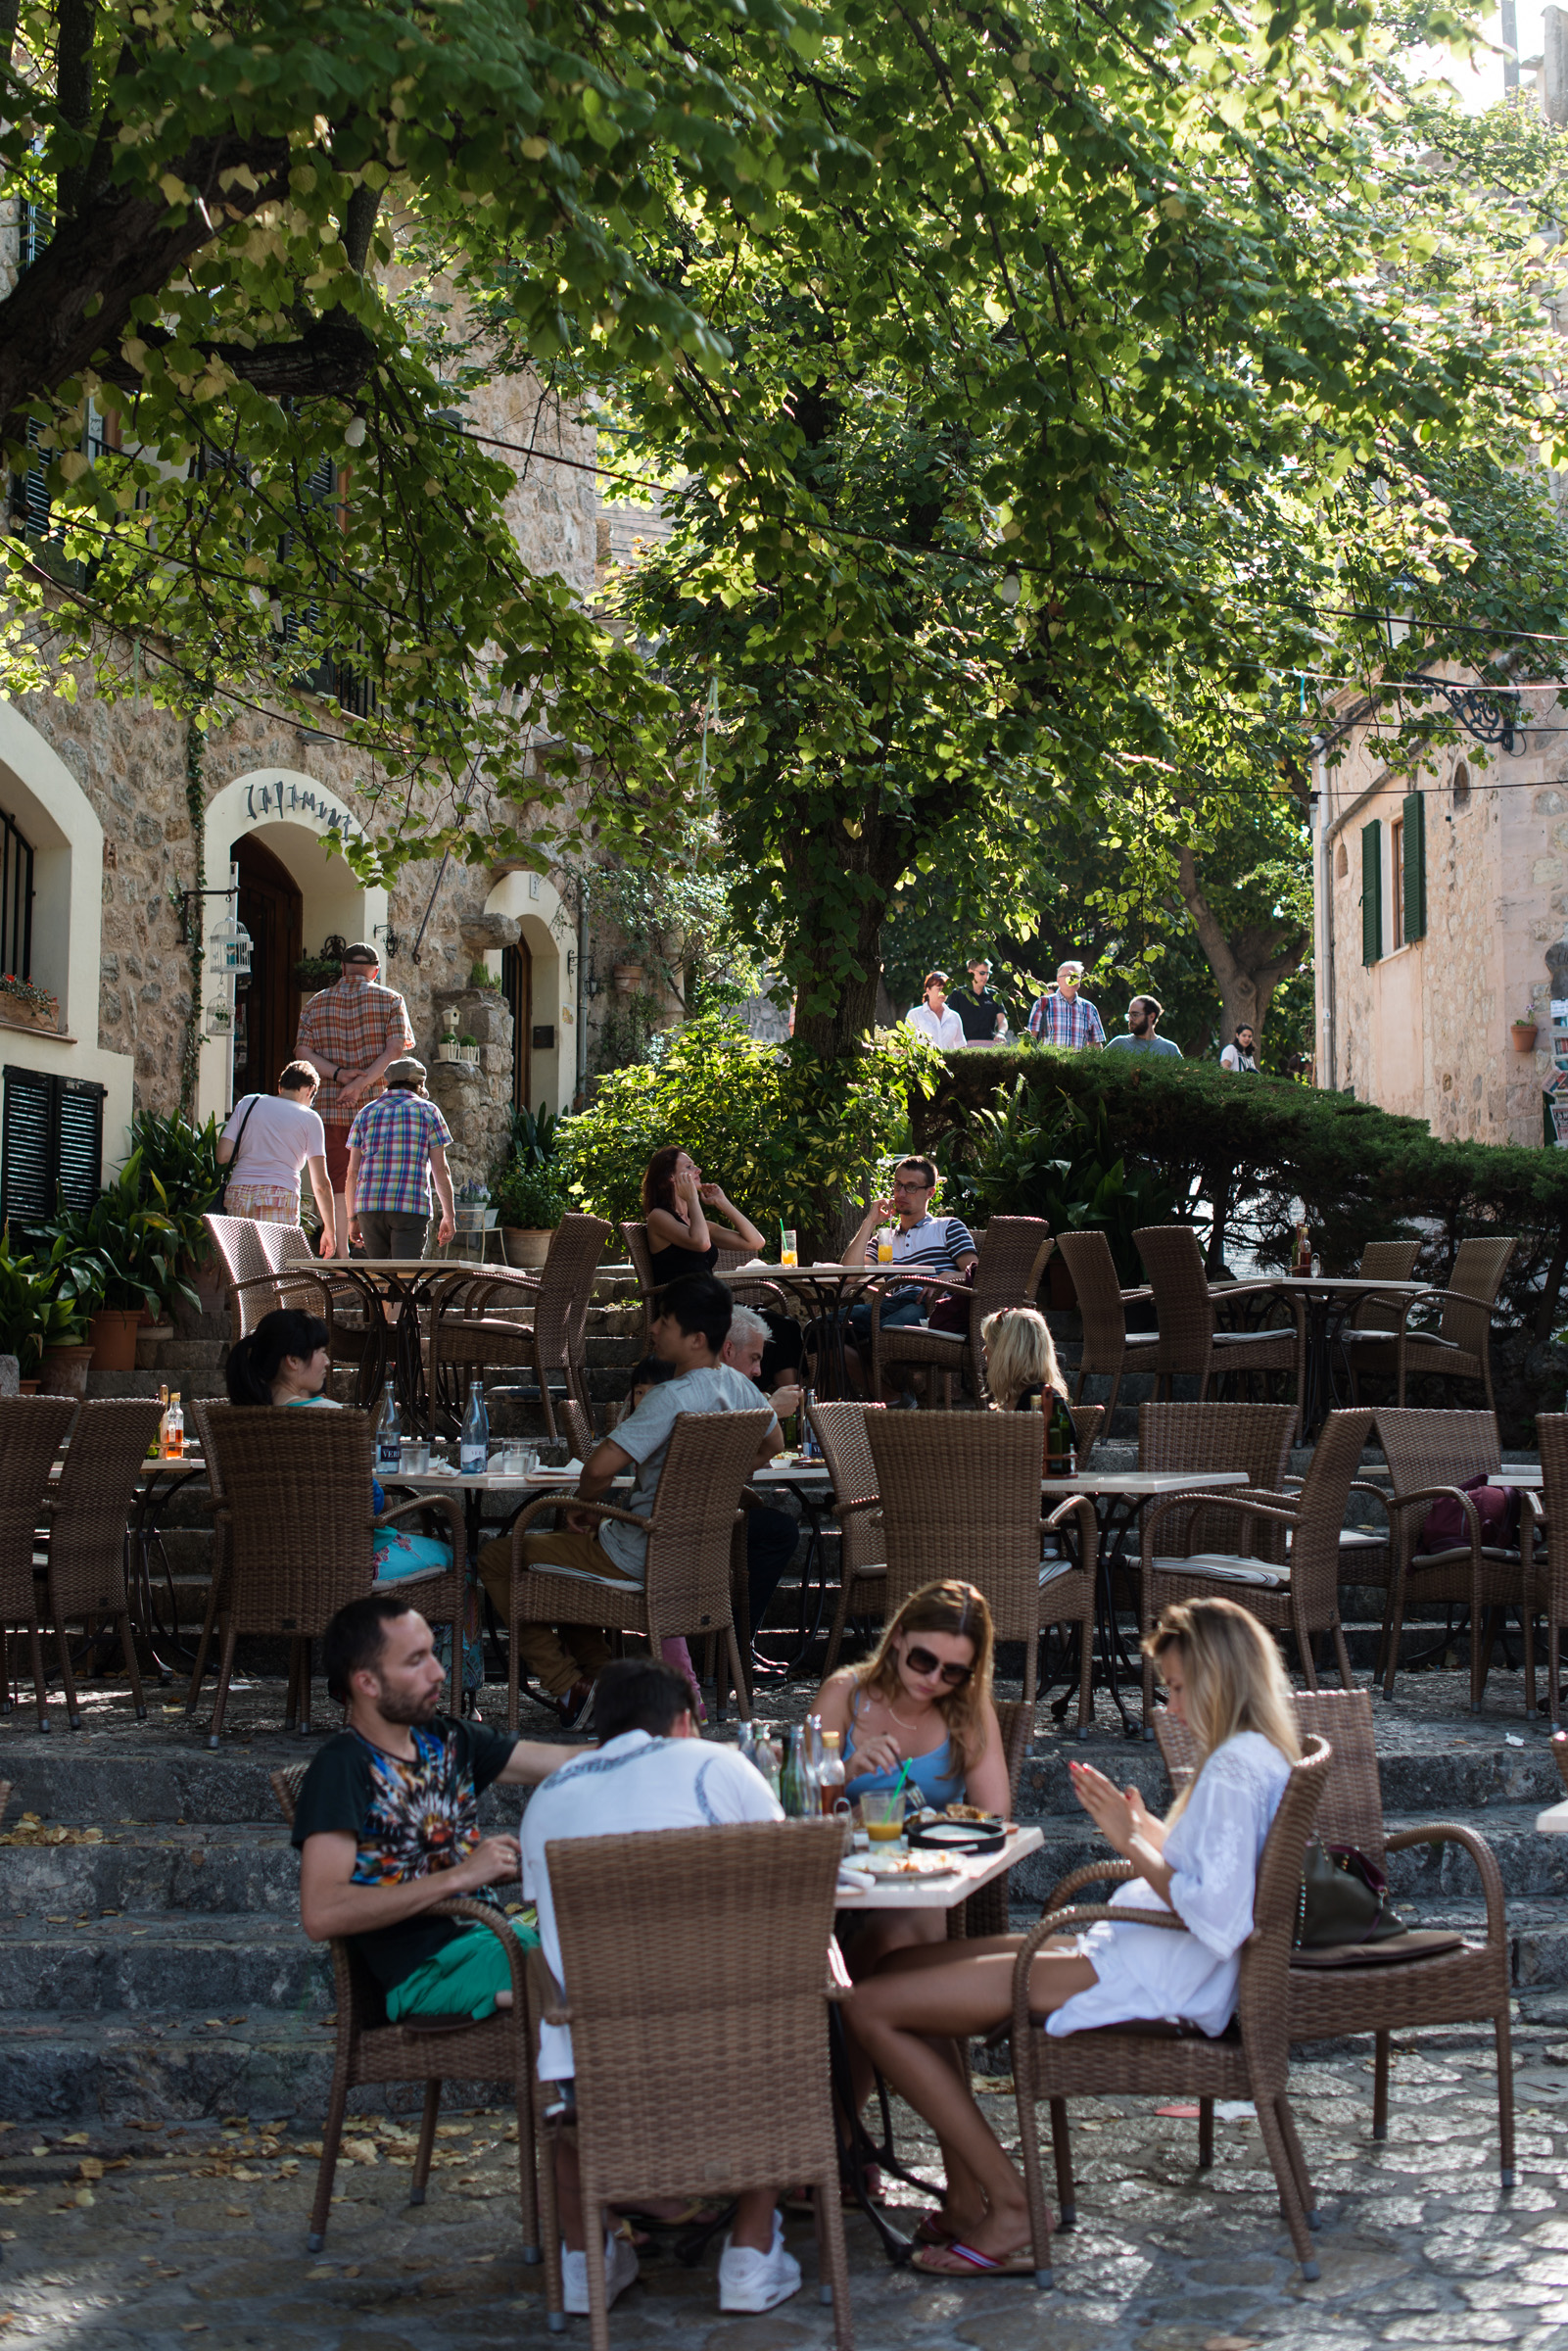 20151004 2570 - A Visit to Valldemossa